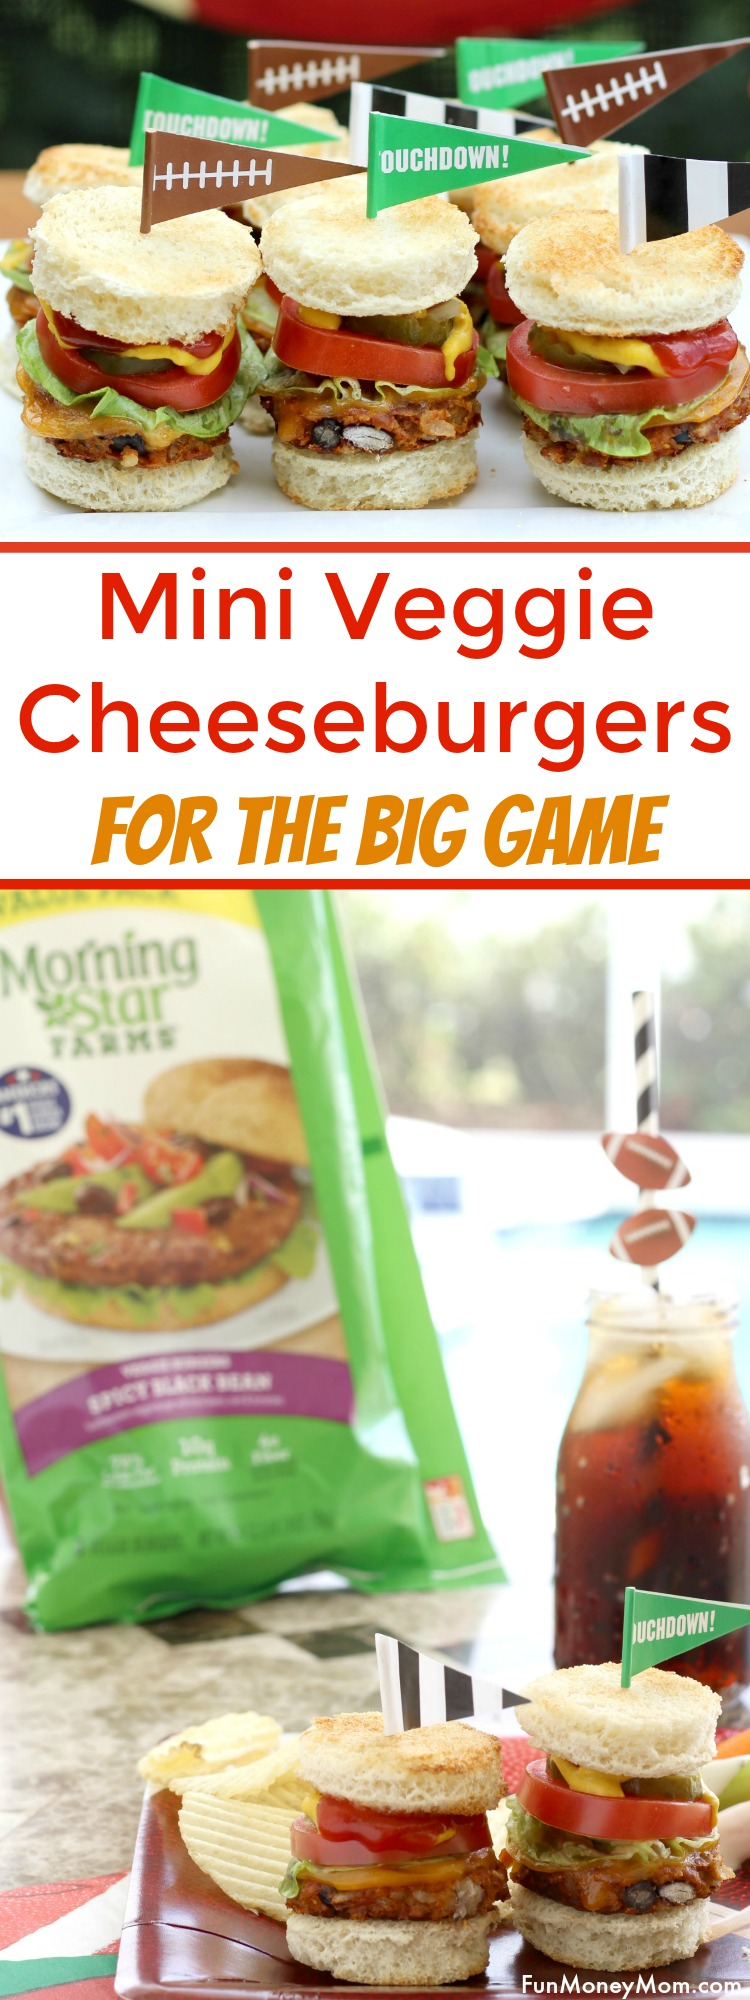 Need a delicious recipe for watching the big game? You don't have to be a vegetarian to love these mini veggie cheeseburgers. Made with black bean burgers, they'll be a hit with the whole family!